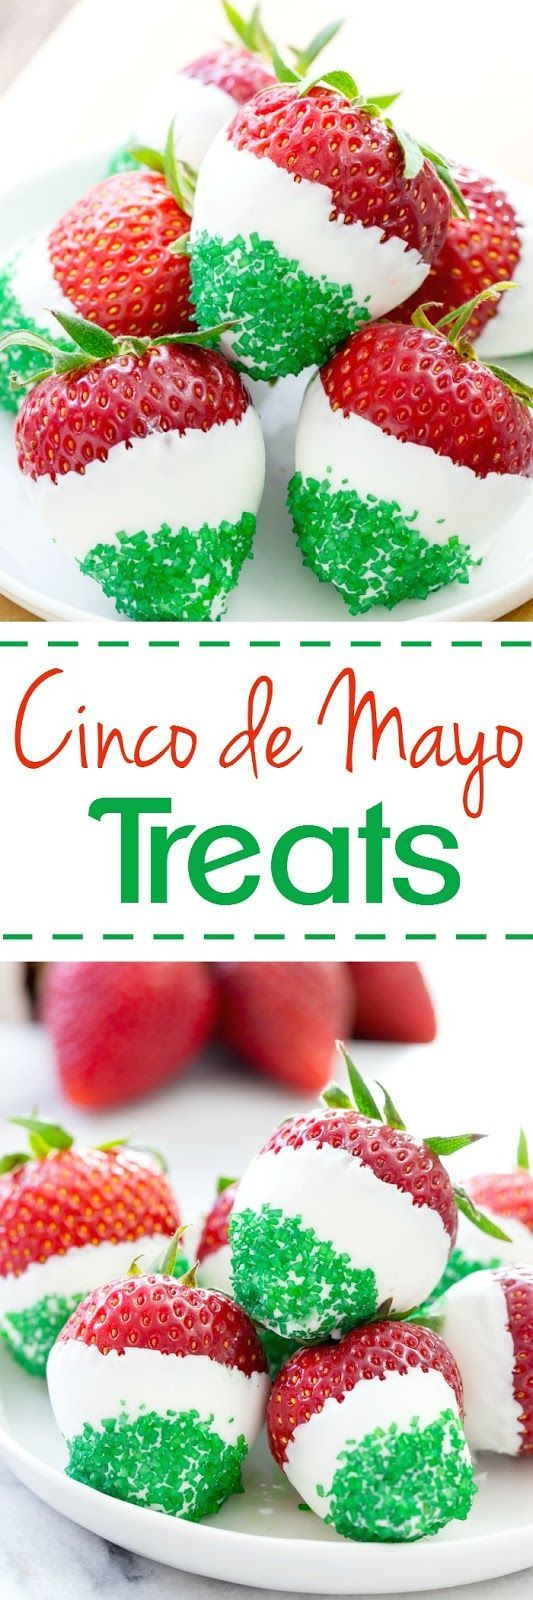 These juicy strawberries are all decked out for Cinco de Mayo.  They are dipped in white chocolate and jazzed up with green sprinkles! (Mexican Desert Recipes Deserts)